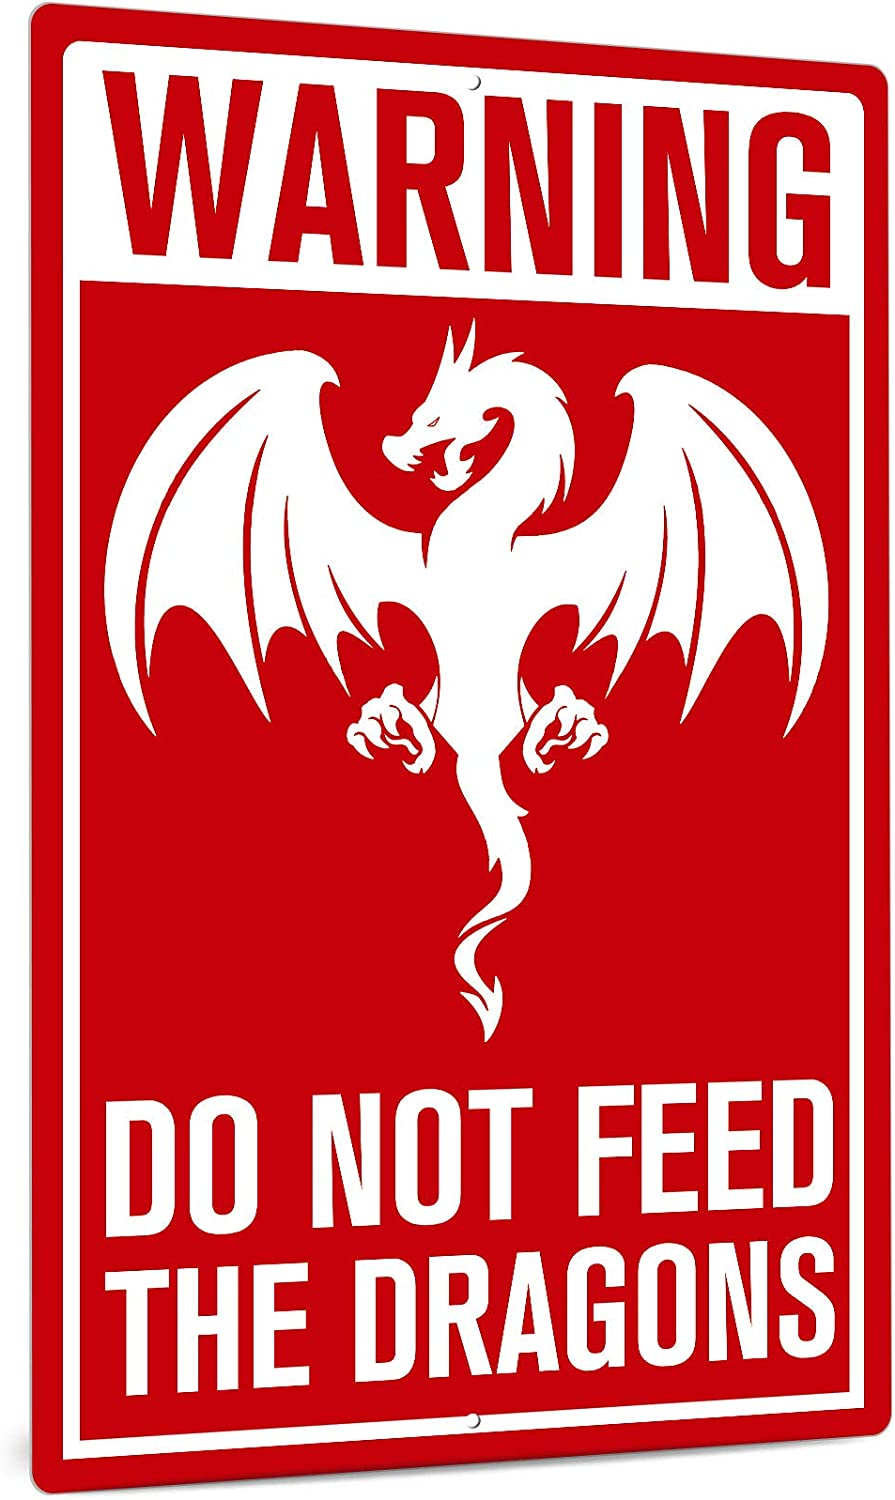 Putuo Decor Warning Sign, Retro Funny Aluminum Metal Wall Sign for Indoor/Outdoor, 12x8 Inches Easy Mounting - Do Not Feed The Dragons